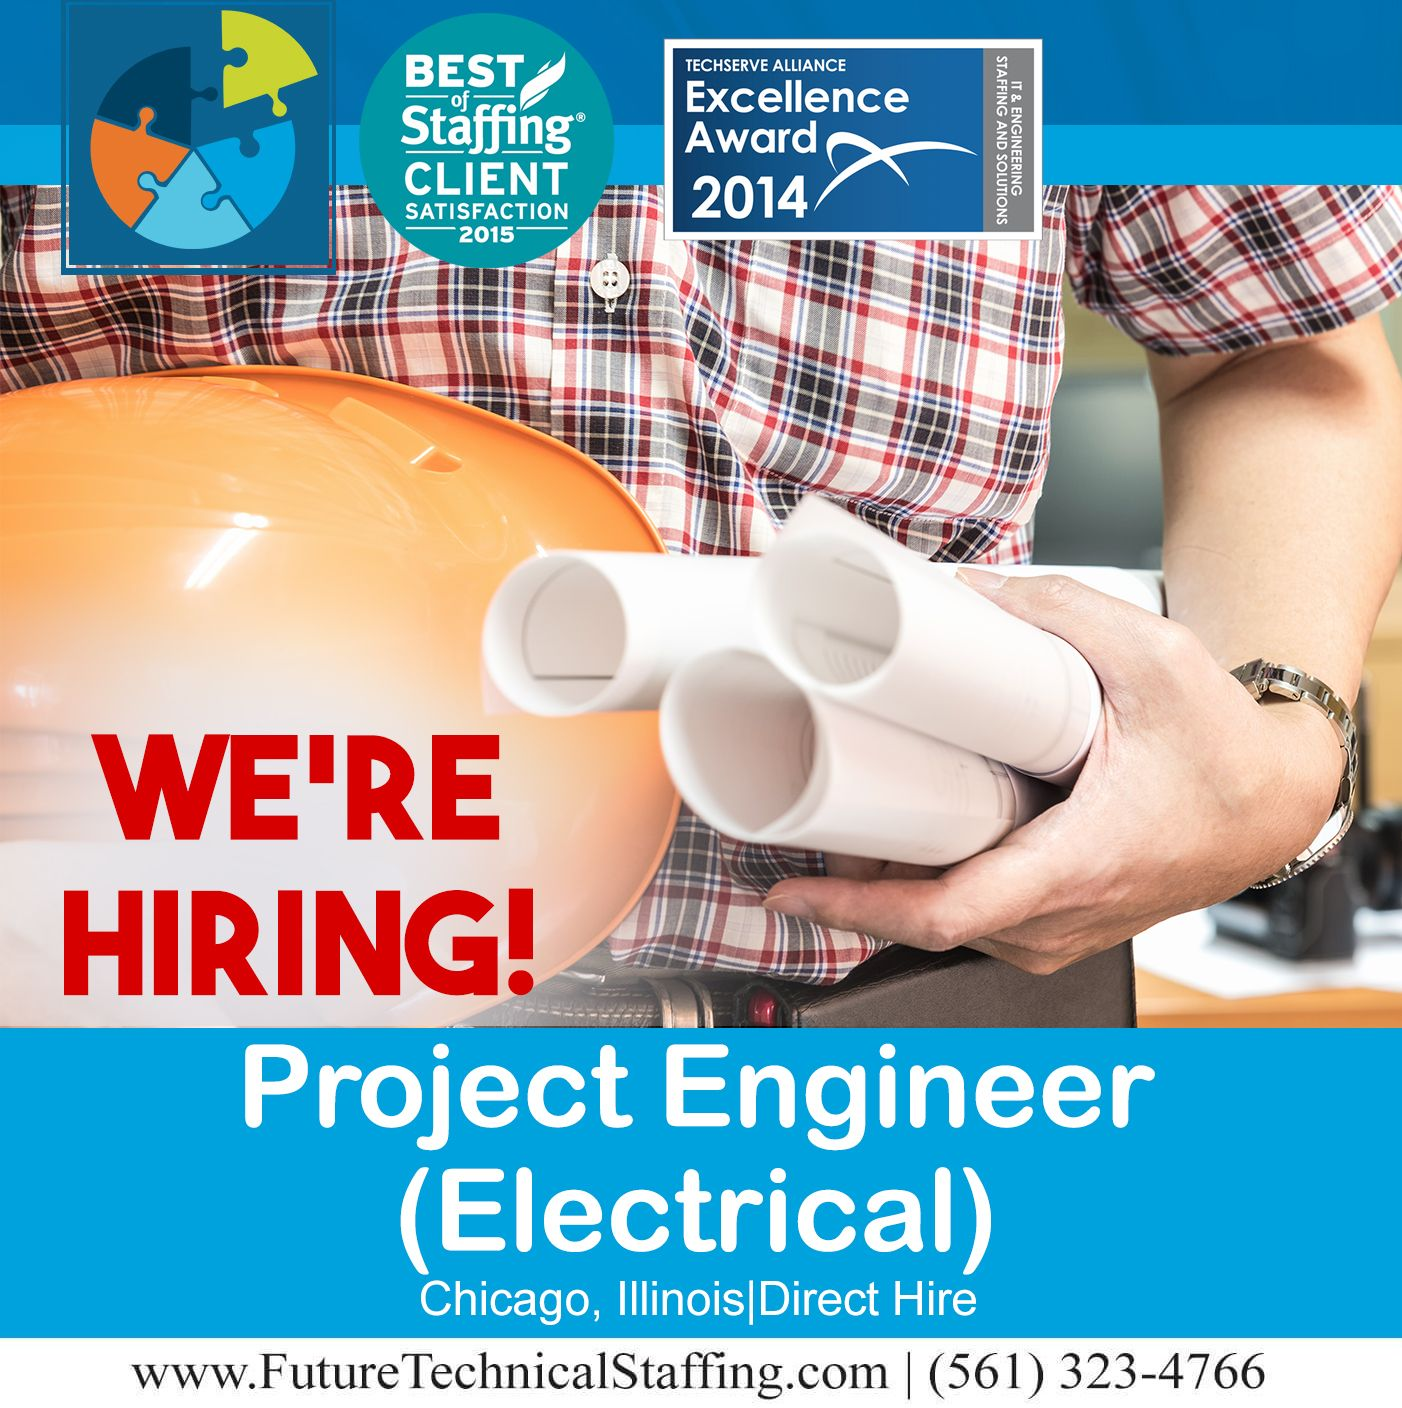 Submit Your Resume Online Job Opening Project Engineer Electrical